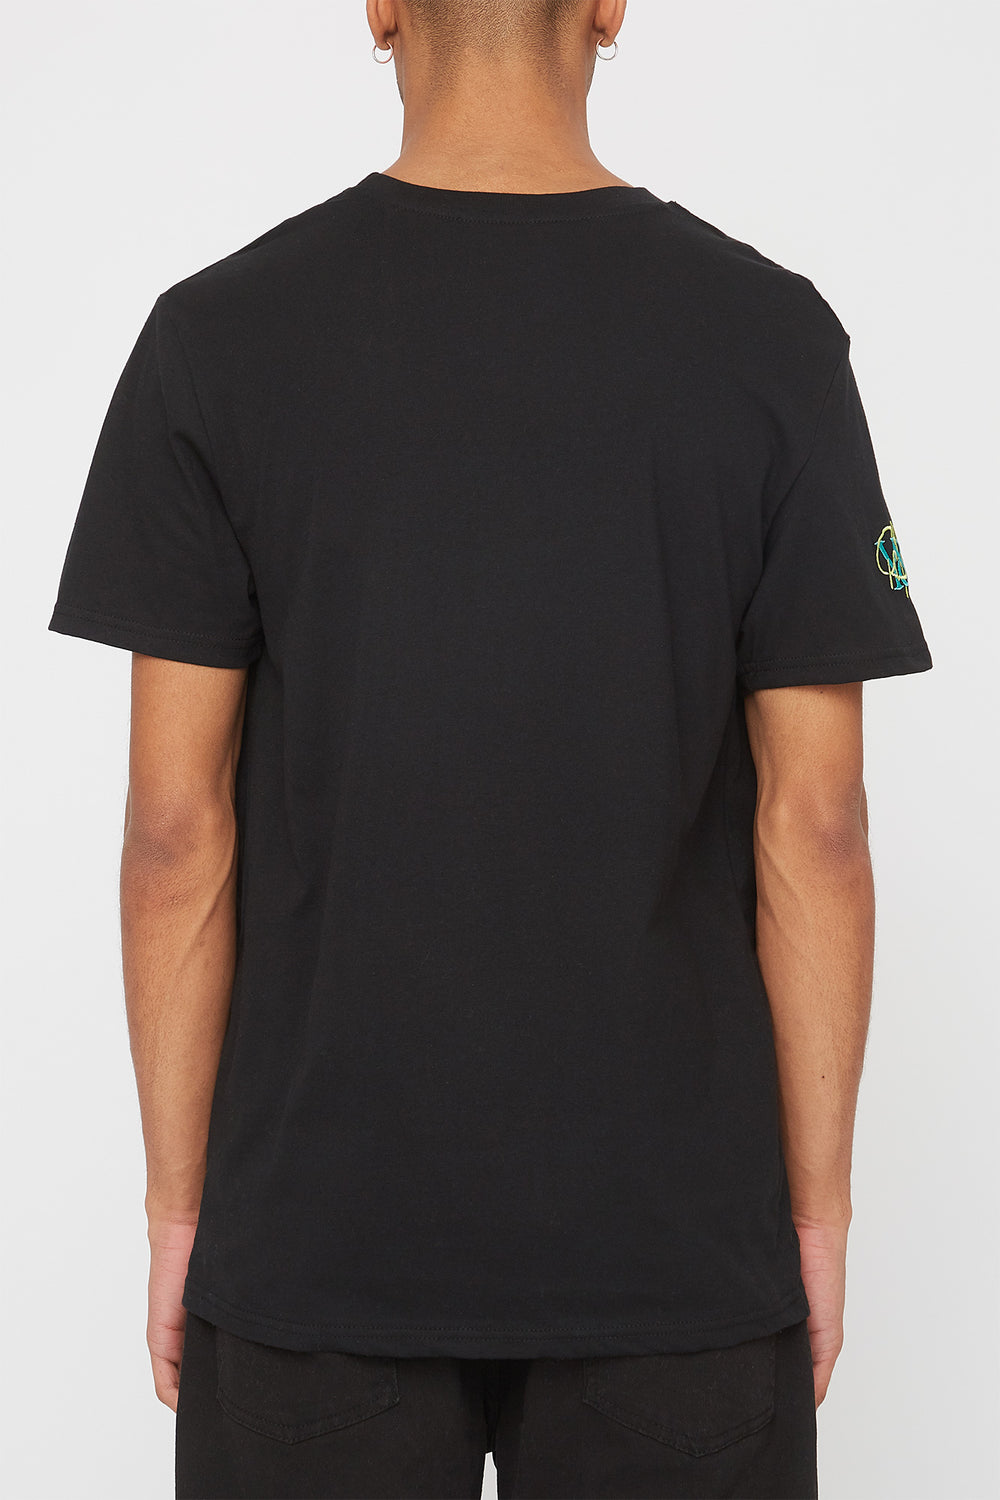 T-Shirt Logos Brodés Young & Reckless Homme Noir